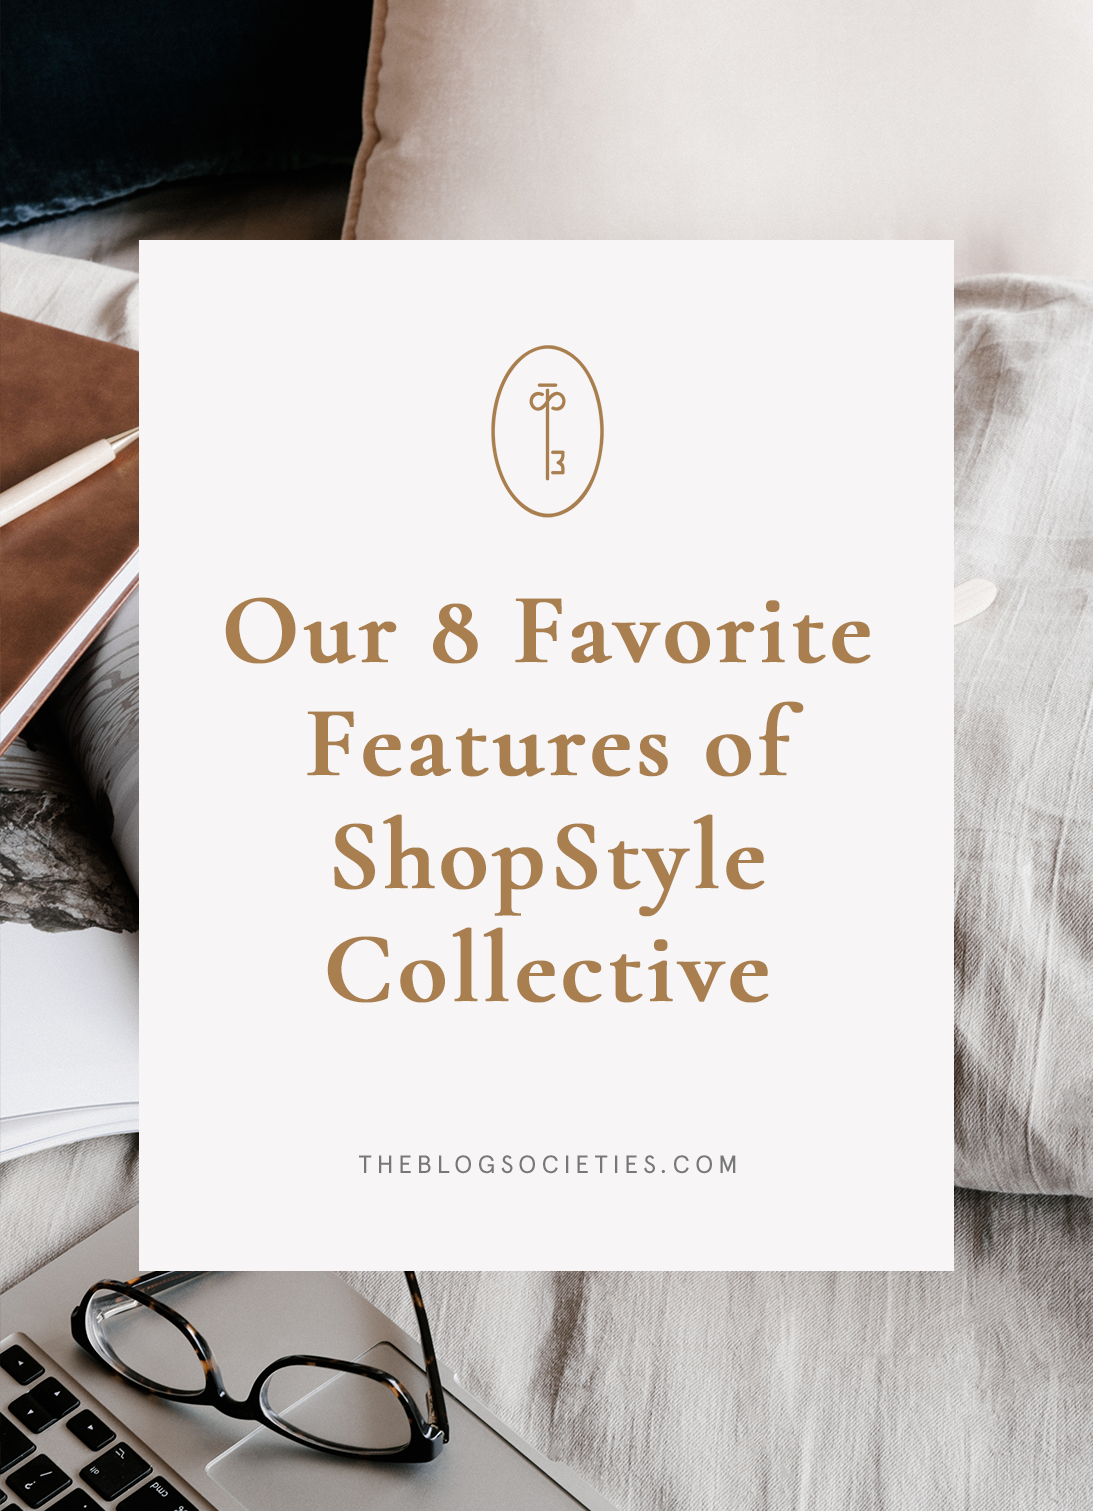 8 ShopStyle Collective Features We Love